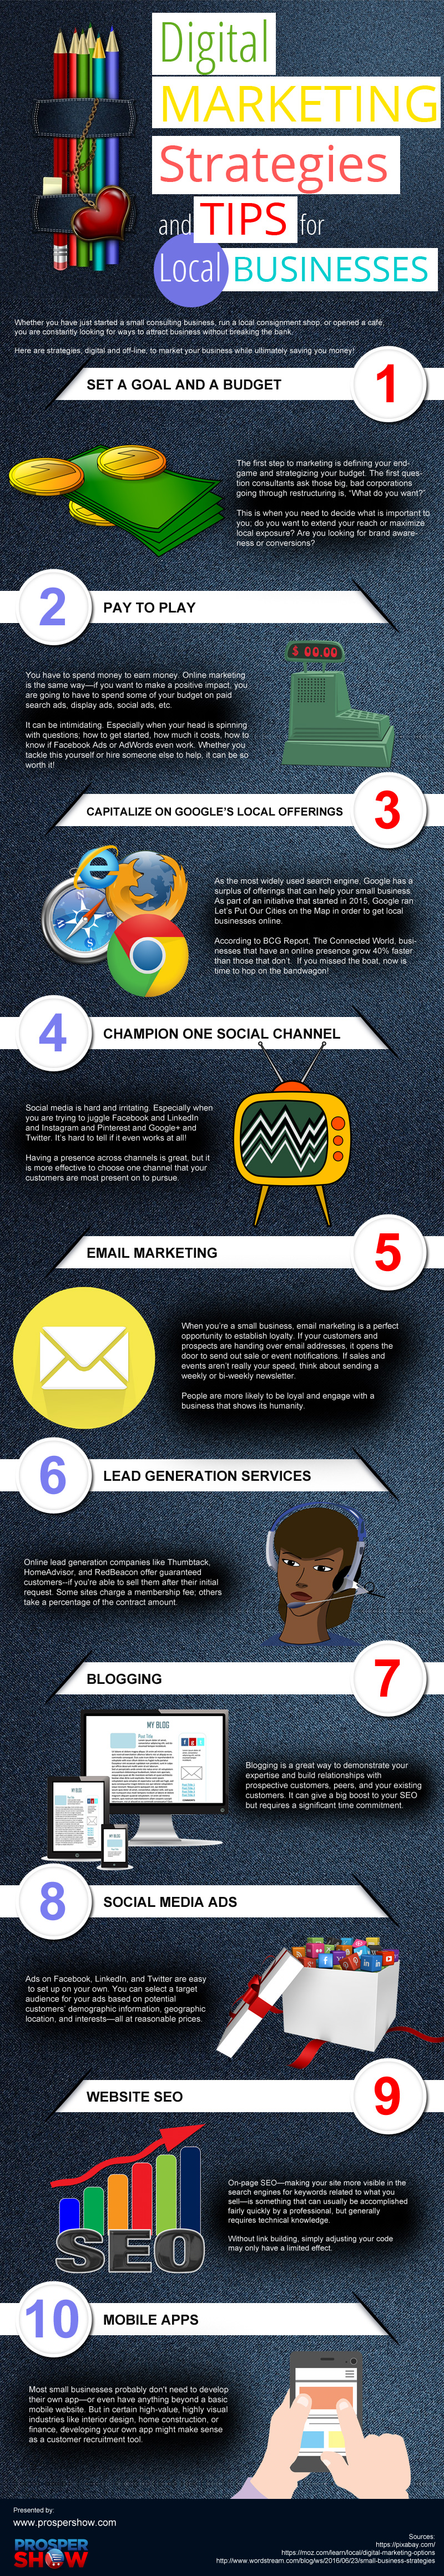 10 Tips For The Digital Marketing Strategies Of Local Businesses - Infographic